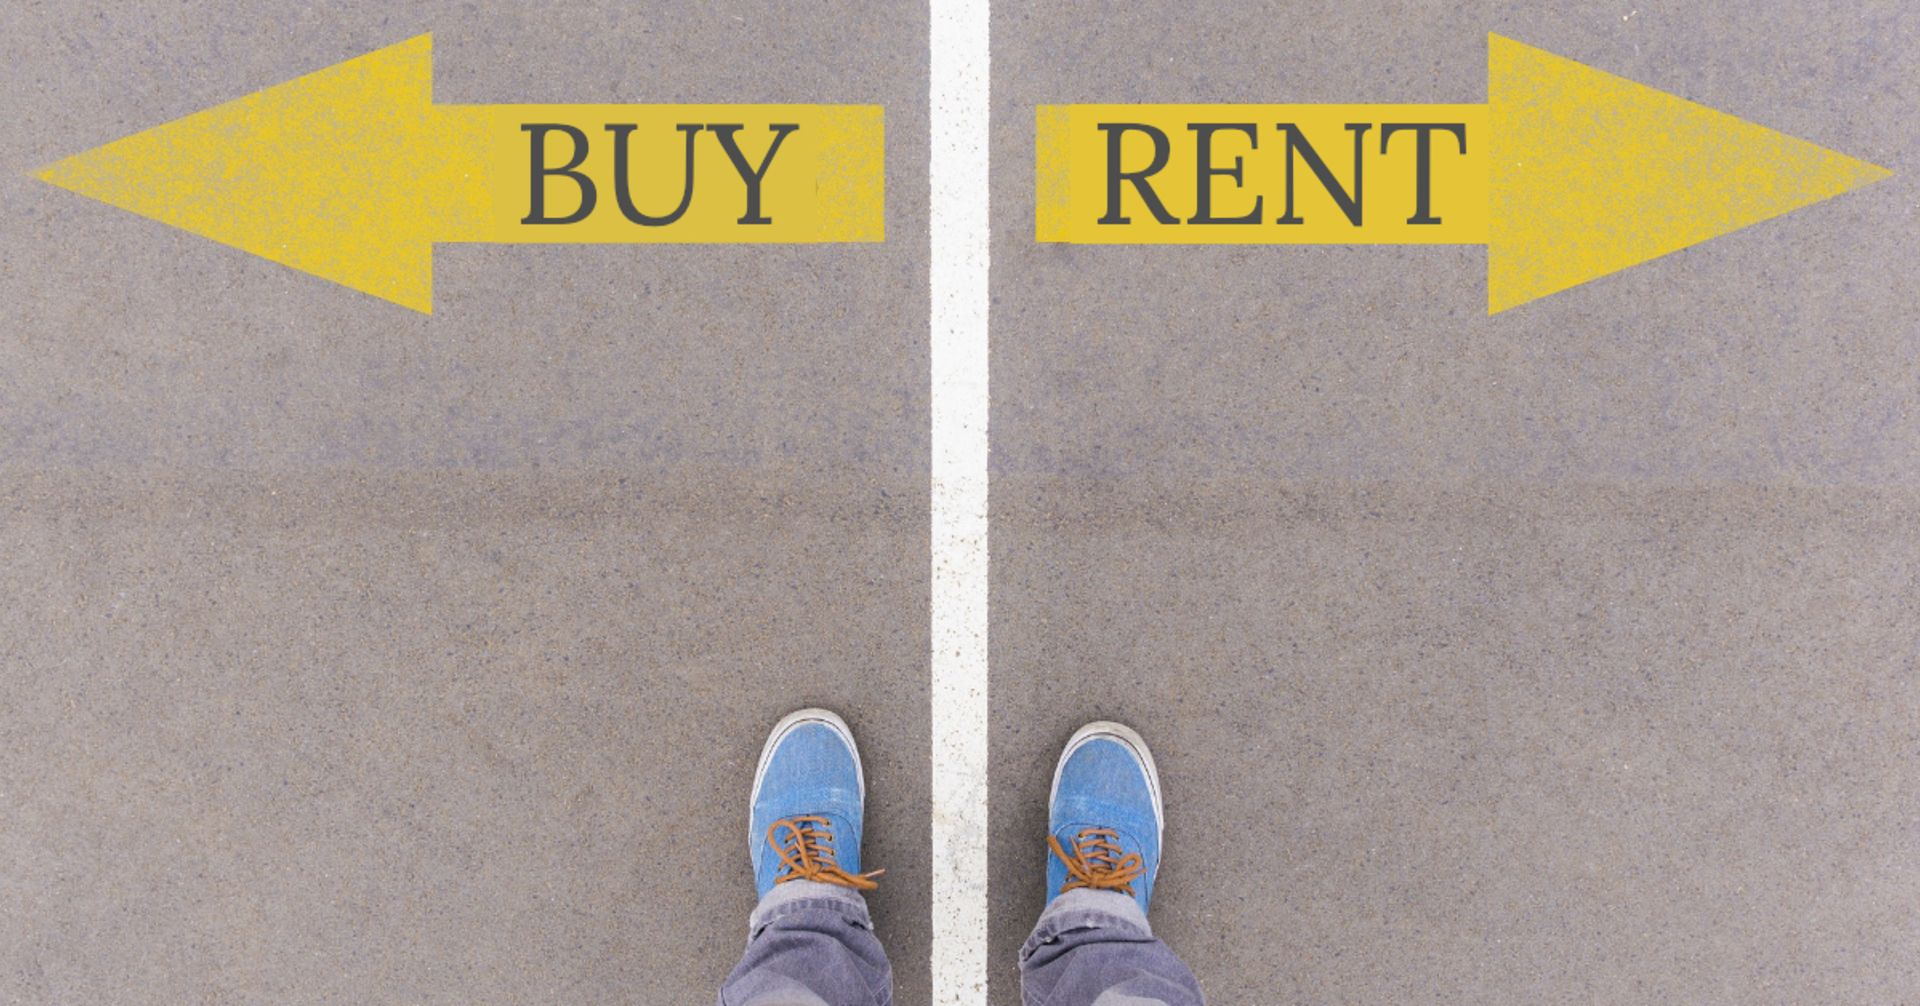 Buying a Home is Cheaper than Renting – Especially in the Boston Area